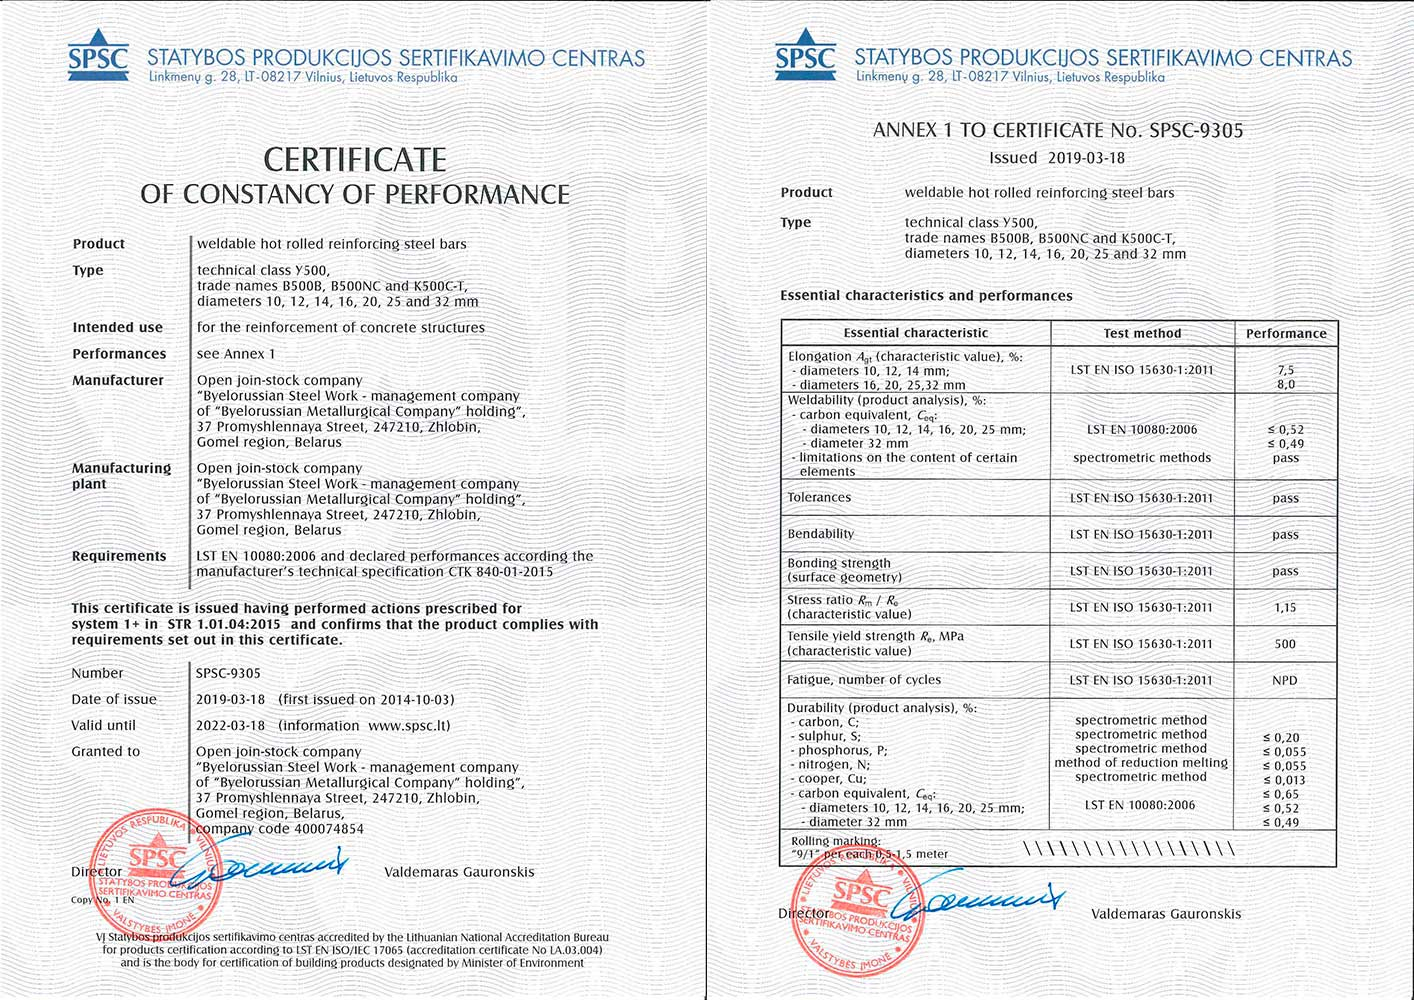 Certificate  SPSC-9305, SPSC, Lithuania, for production of hot-rolled reinforcing  steel  Y500 (Grade B500B, B500NC, K500C-T) Ø 10, 12, 14, 16, 20, 25 and 32 mm in conformity with standard LST EN 10080:2006 and producer's technical specification СТК 840-01-2015